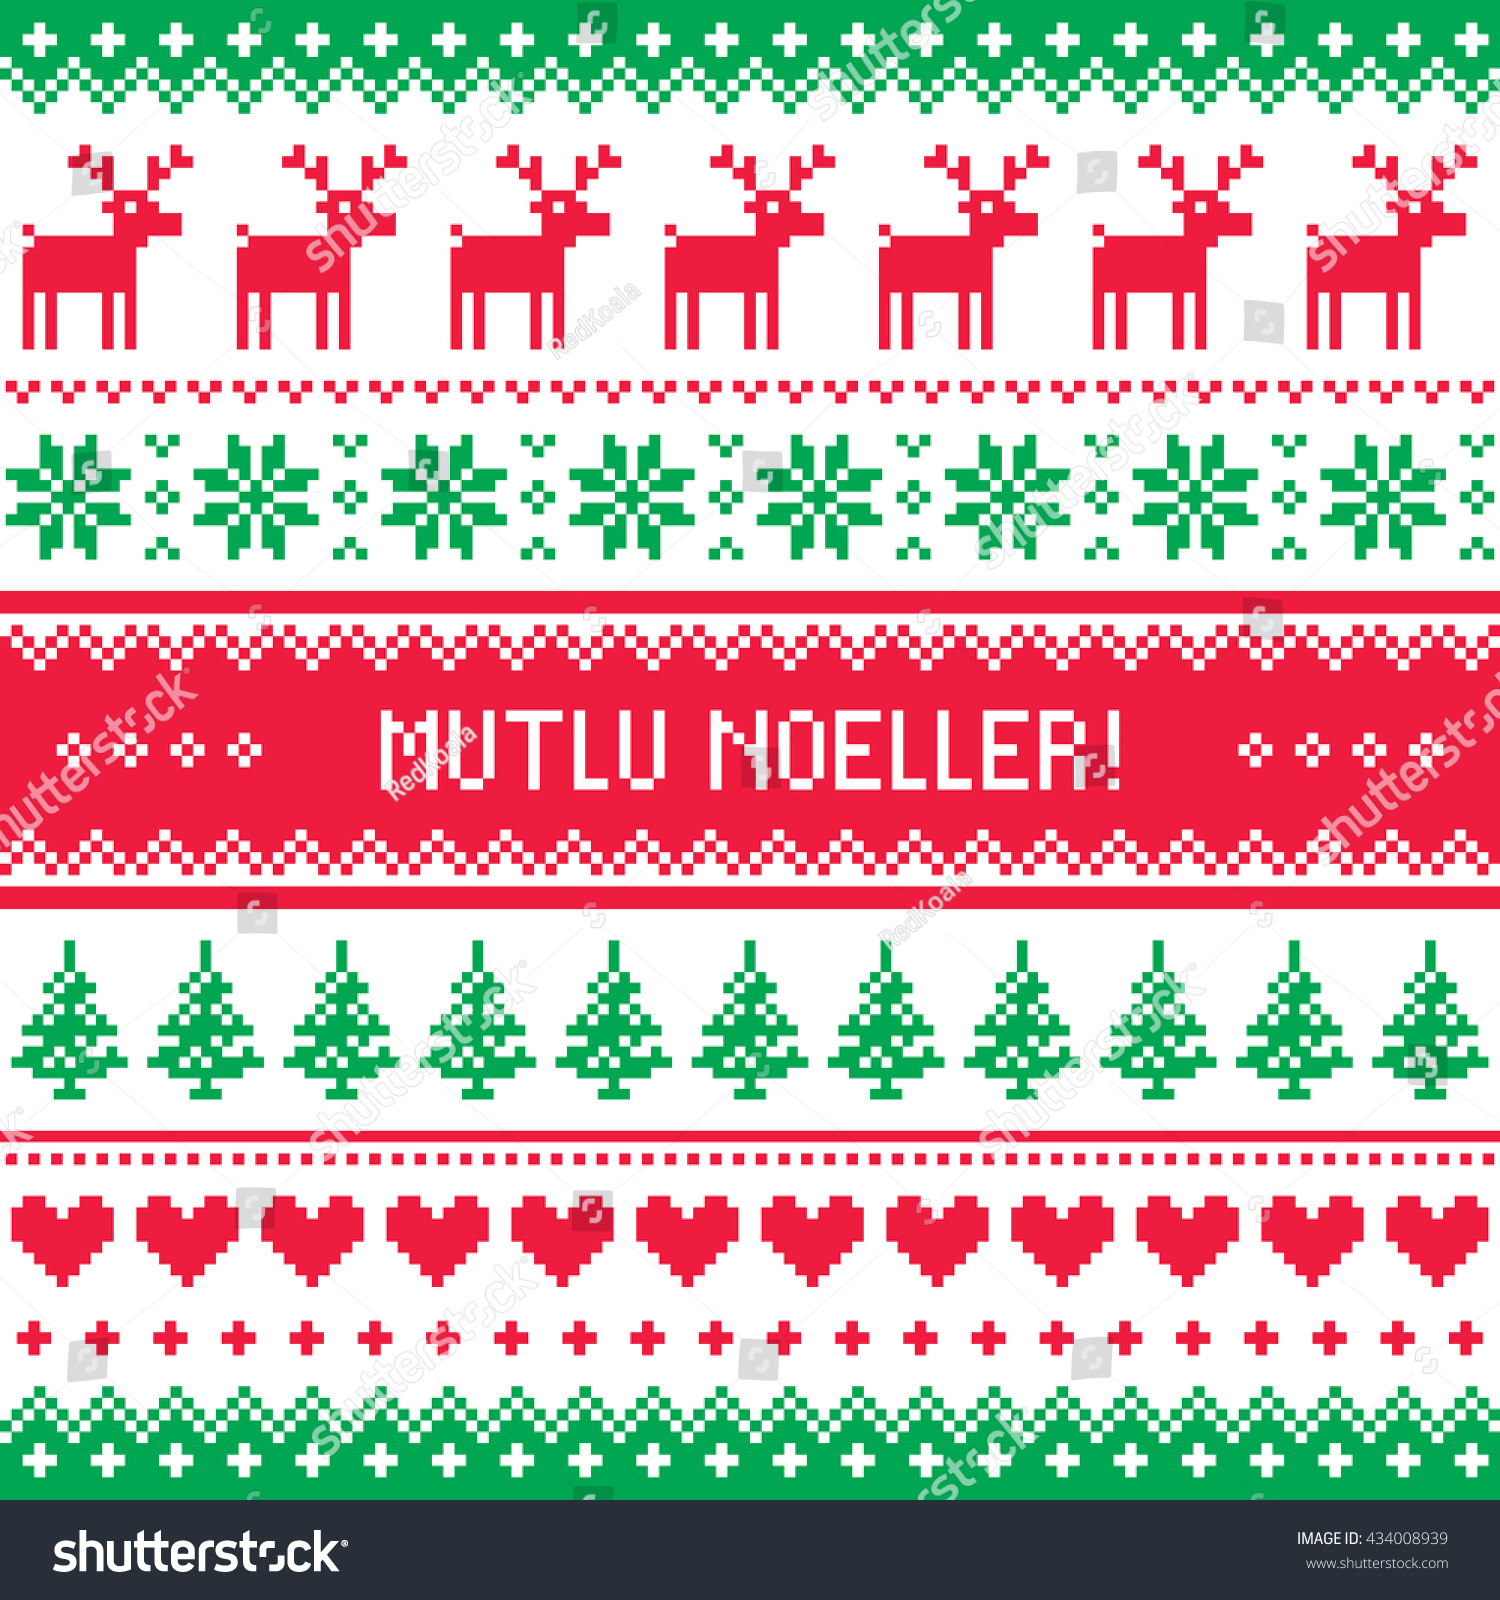 Merry Christmas Turkish Mutlu Noeller Pattern Stock Vector ...